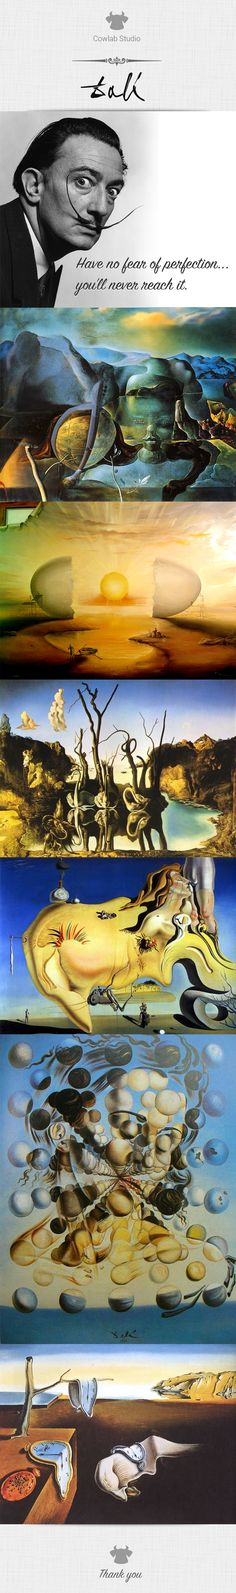 Salvador Domingo Felipe Jacinto Dalí i Domènech, 1st Marqués de Dalí de Pubol (May 11, 1904 – January 23, 1989), known as Salvador Dalí, was a prominent Spanish surrealist painter born in Figueres, in the Catalonia region of Spain. Dalí was a skilled draftsman, best known for the striking and bizarre images in his surrealist work. His painterly skills are often attributed to the influence of Renaissance masters.